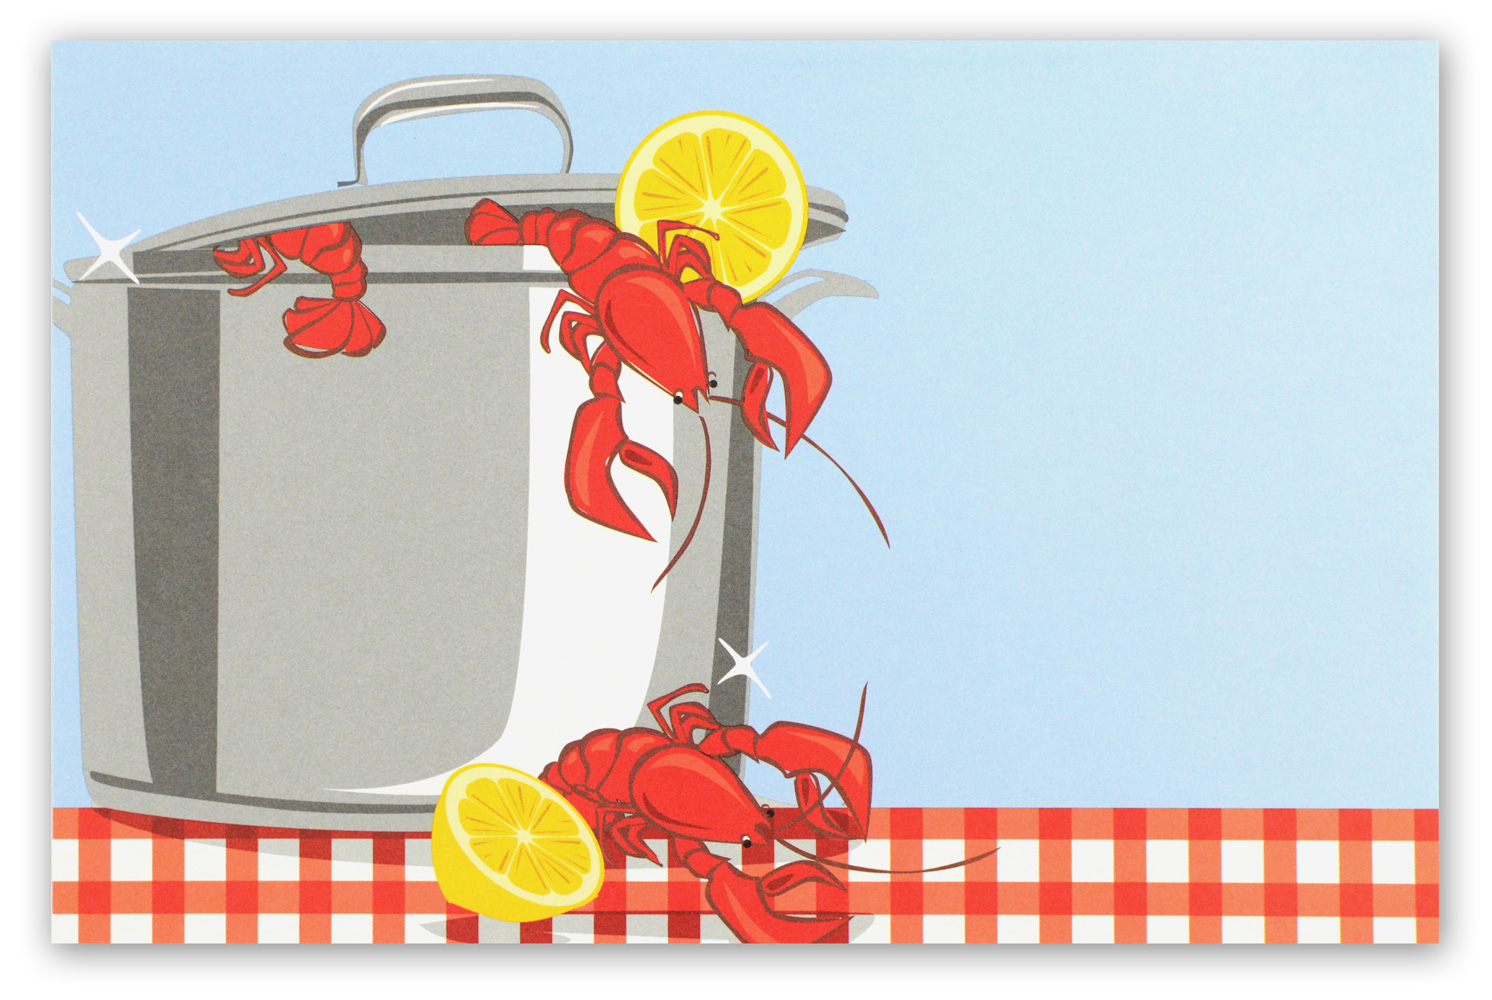 Crawfish Pot Clipart - Clipart Kid